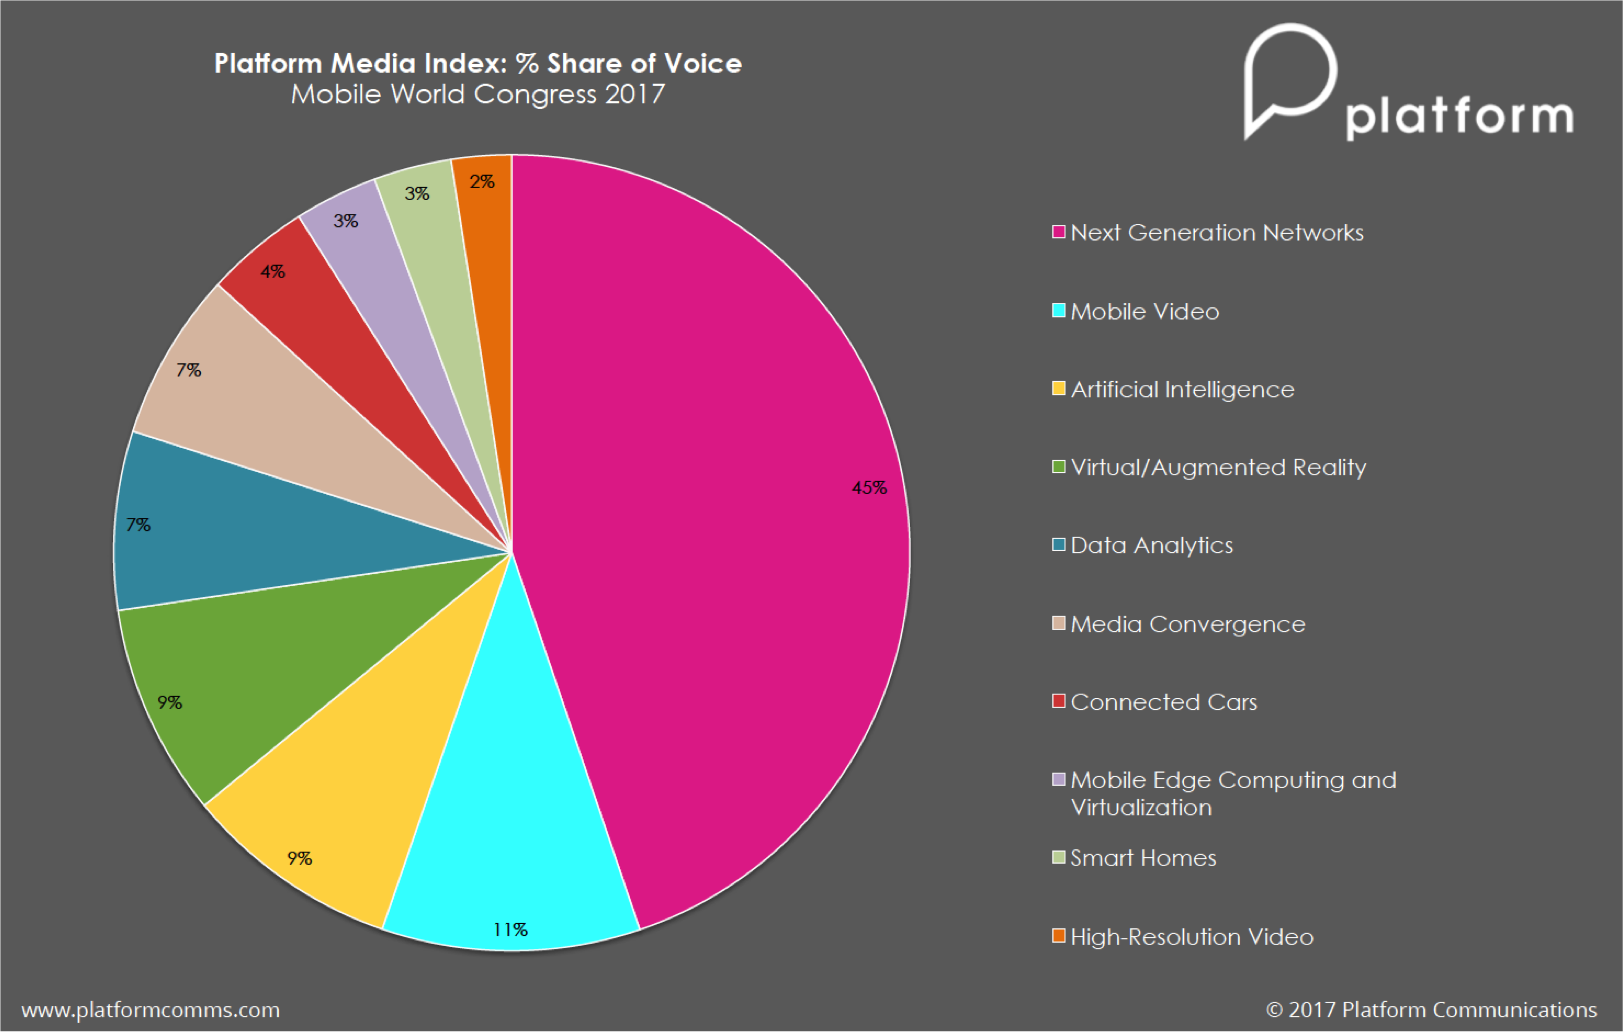 Platform Communications - Mobile World Congress - Pie Chart